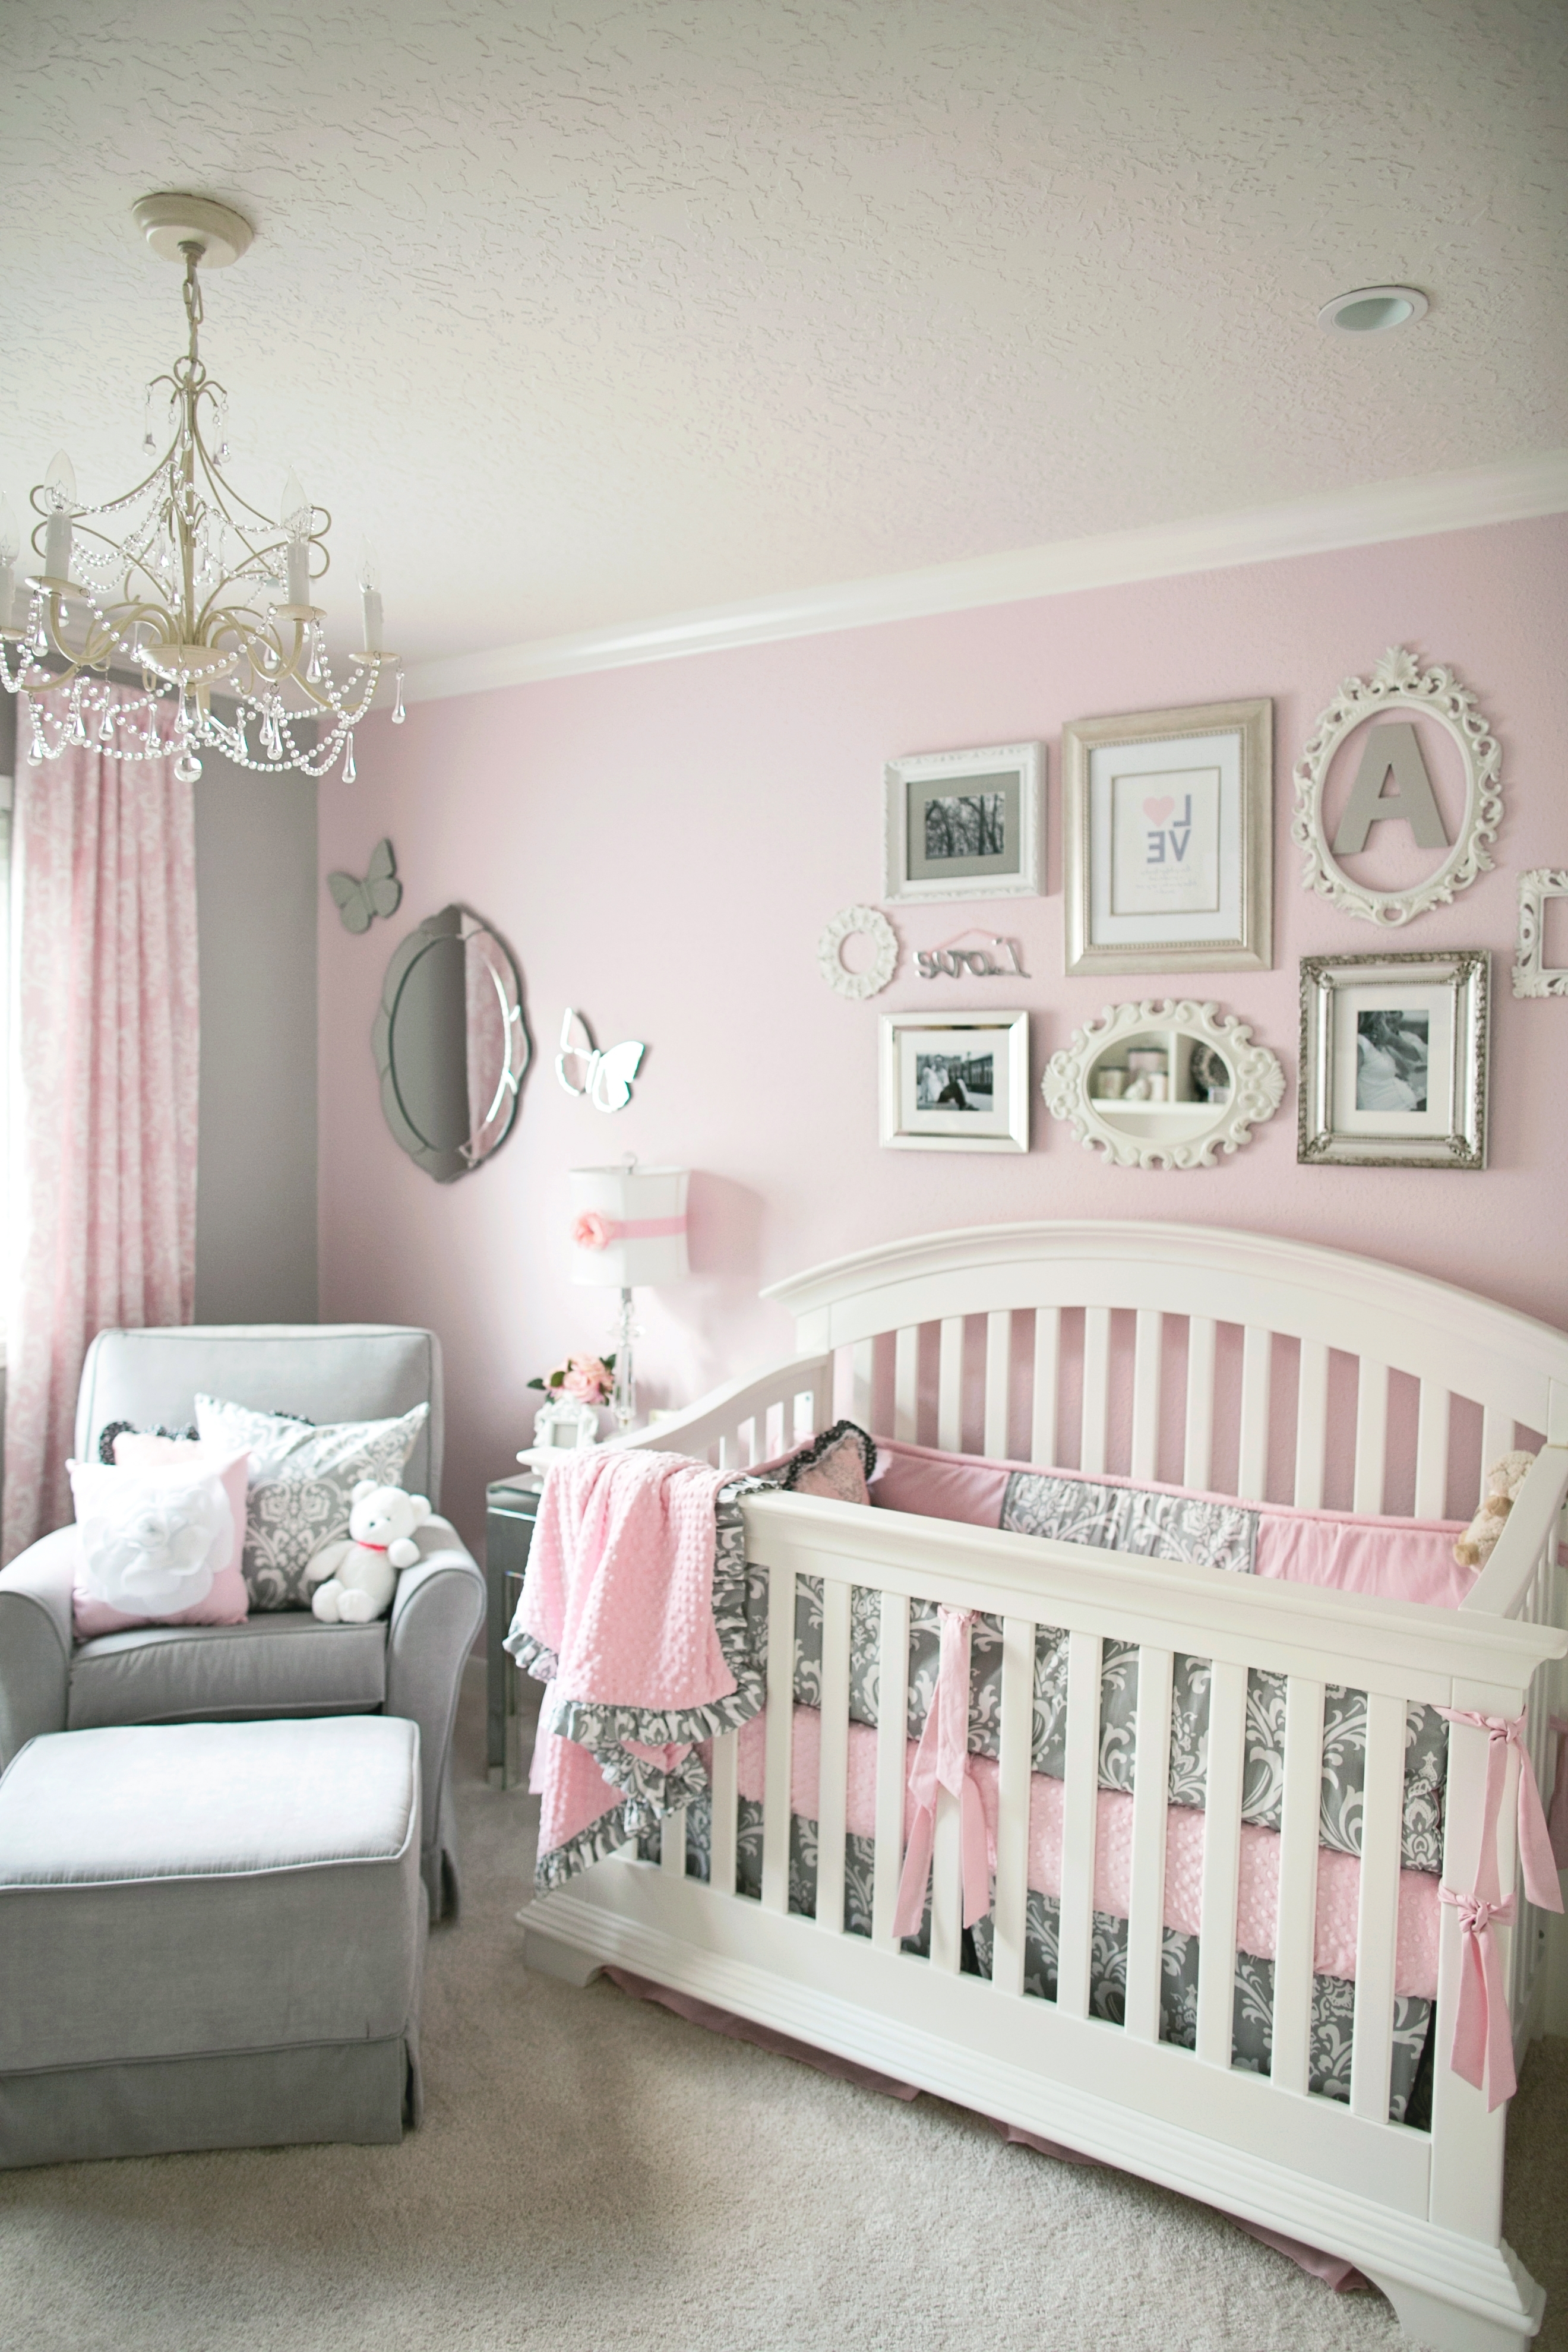 Contemporary Baby Girl Room Decor Chevron Pattern Curtain Ideas Full For 2018 Crystal Chandeliers For Baby Girl Room (View 4 of 15)